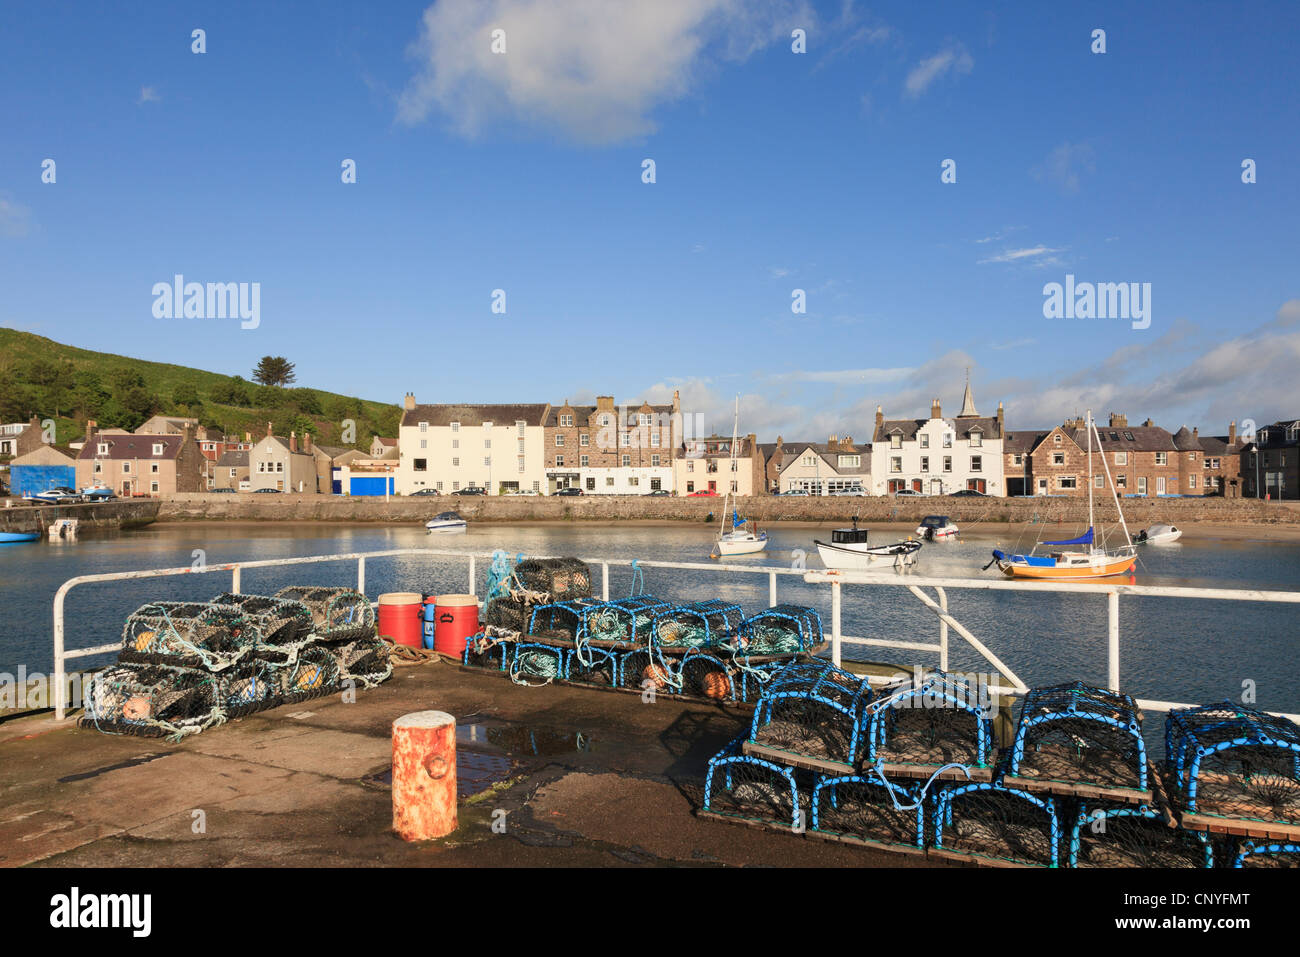 Lobster pots on the quayside of the small fishing port and harbour at Stonehaven, Aberdeenshire, Scotland, UK. - Stock Image